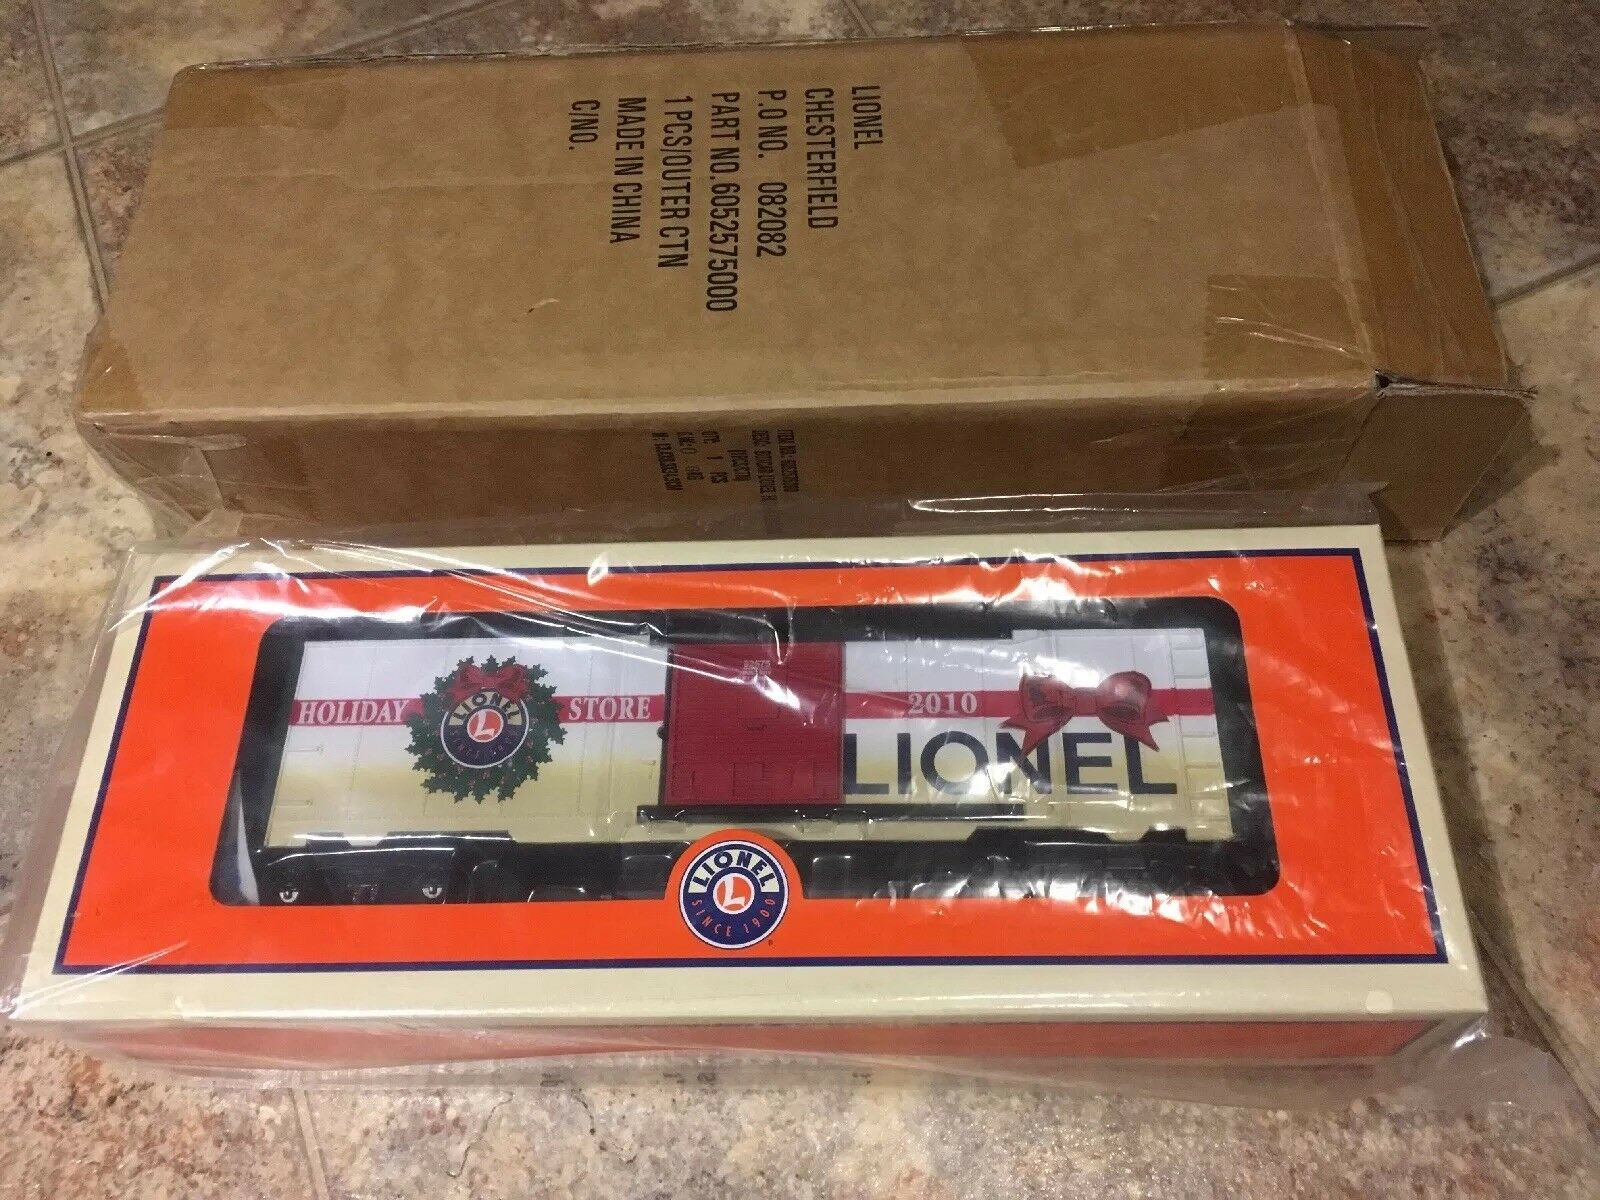 Lionel 6-52575  Holiday Stores Christmas Boxcar 2010  Limited Edition